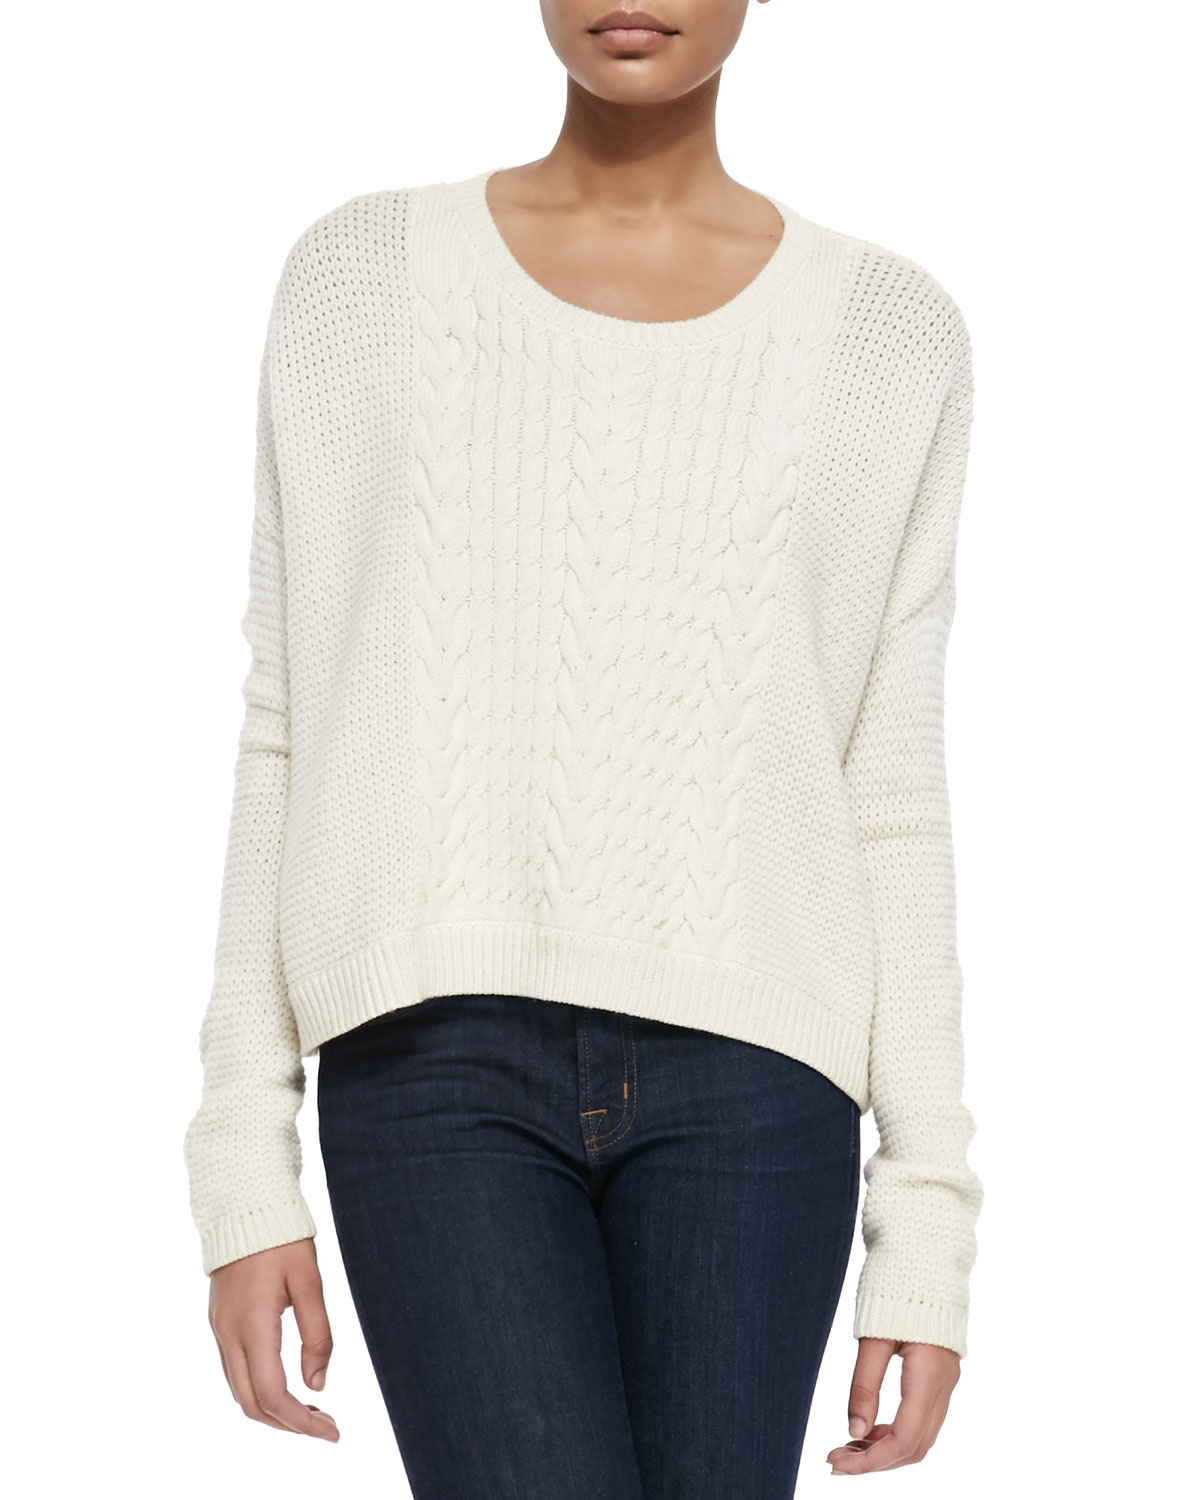 Scoop-Neck Open-Weave Sweater, Size: LARGE, ivory - Alice + Olivia